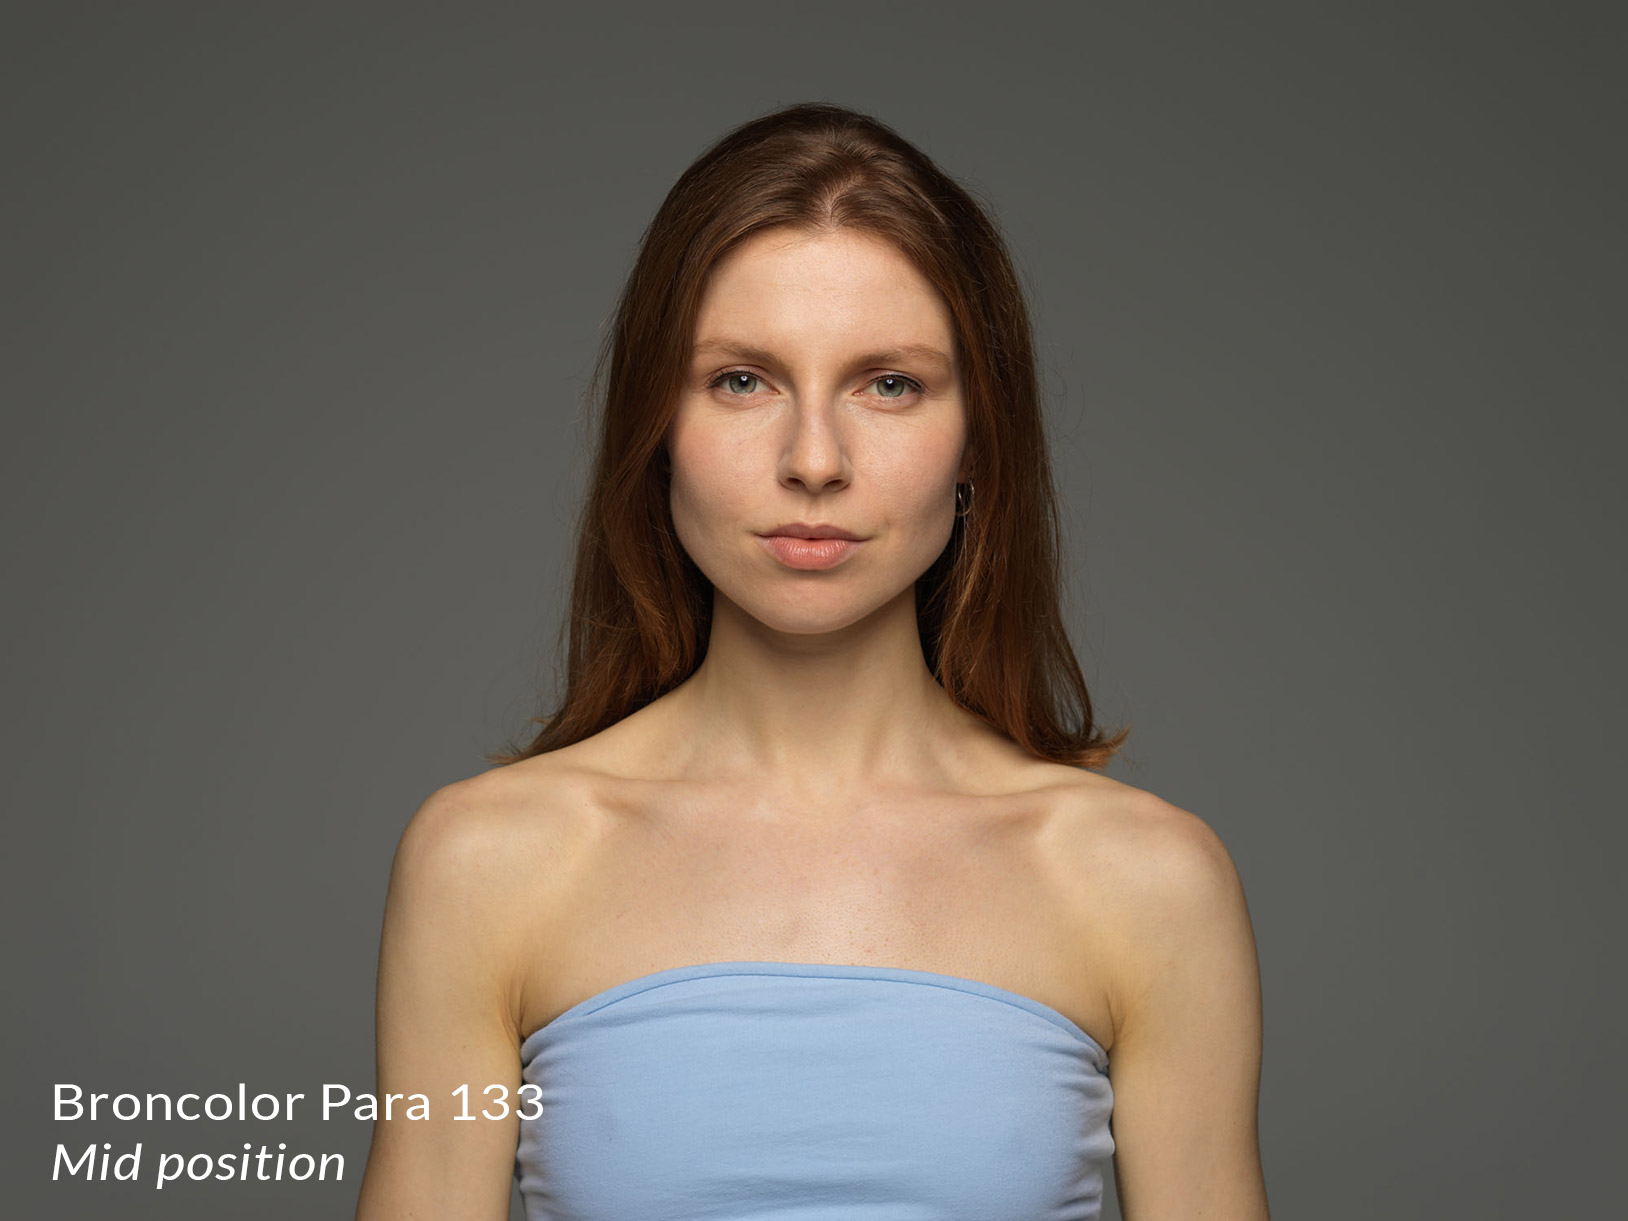 Lighting from broncolor para 133 in the mid position